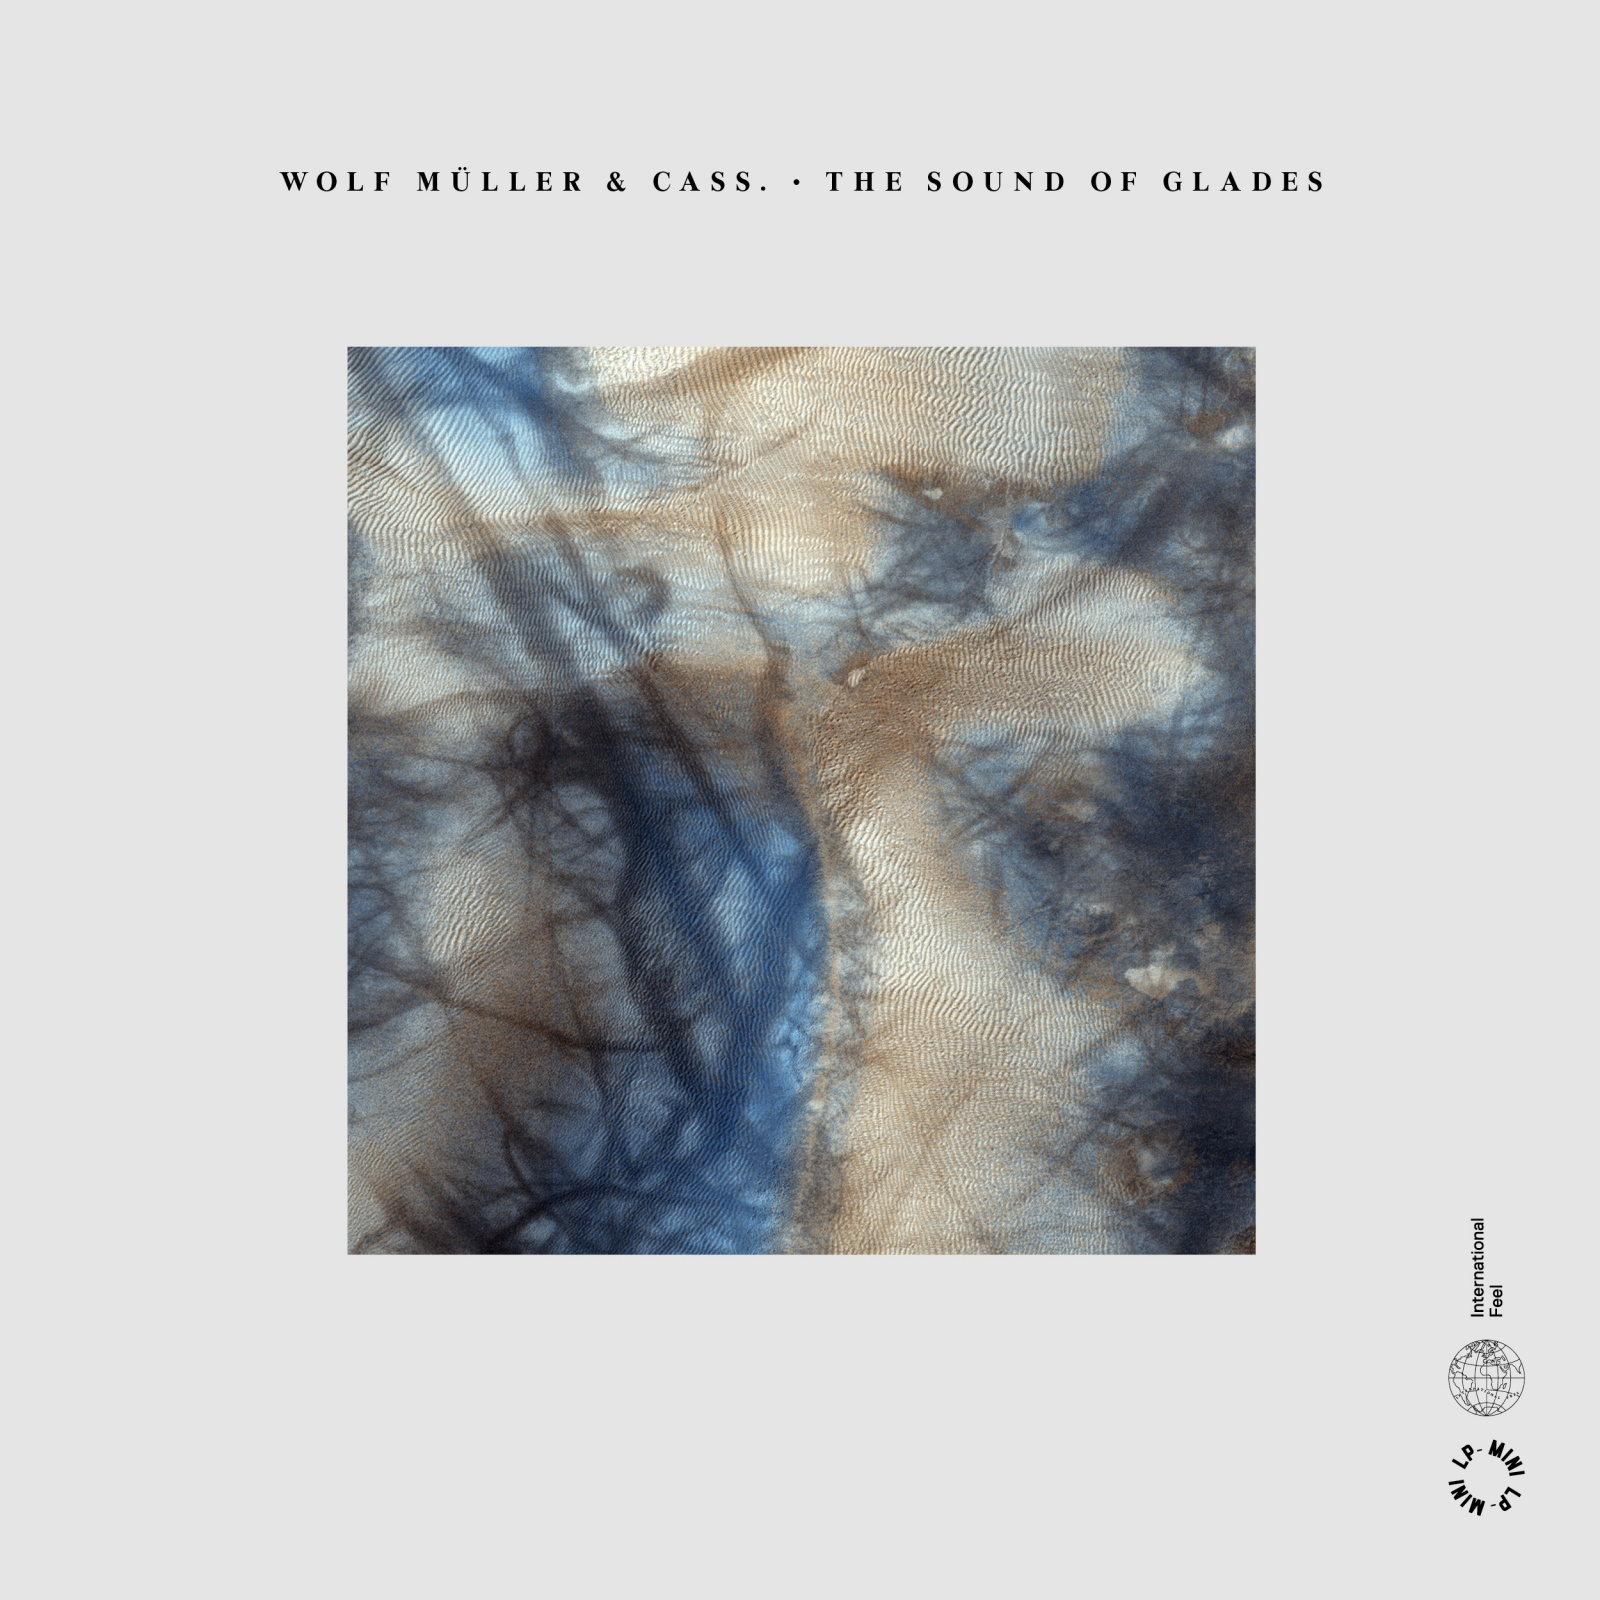 Wolf Muller & Cass - The Sound of Glades